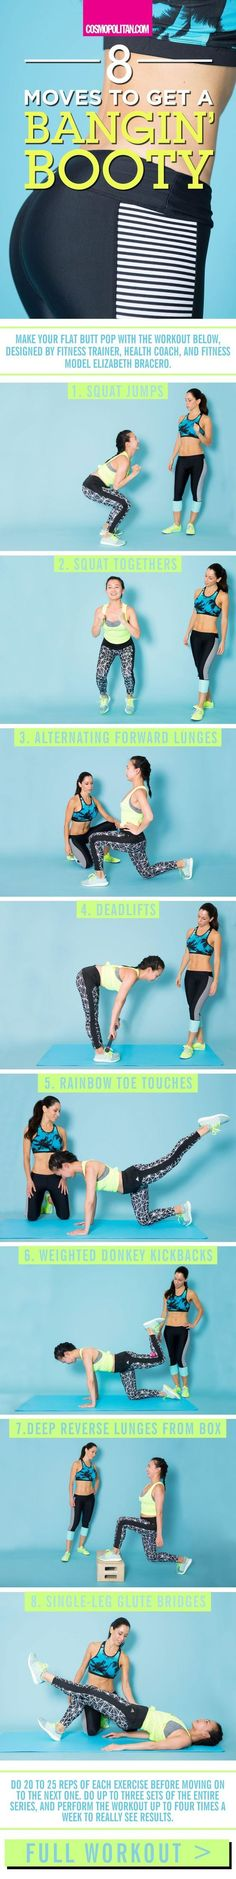 How to Get a Bigger Butt: Give your backside a sexy pop (and strength) with this workout and fitness tips from fitness trainer, health coach, and fitness model Elizabeth Bracero. Do these butt moves at home or at the gym — this simple workout can be done anywhere. Just follow the instructional gifs that show you how to correctly do each move.